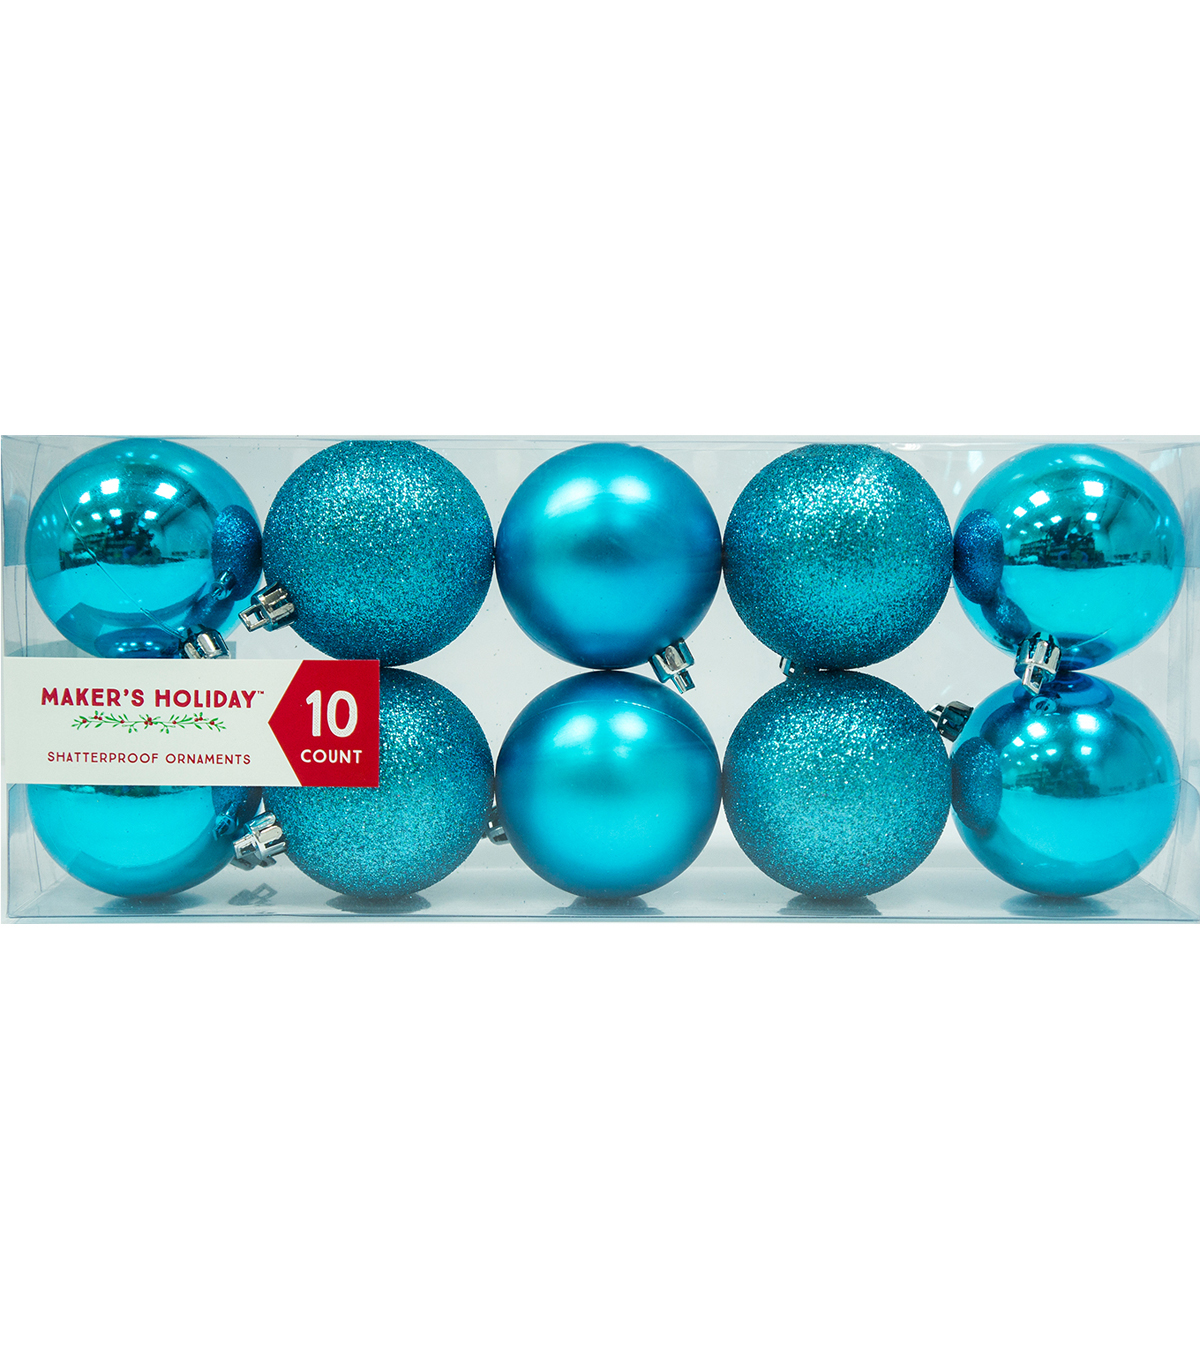 Maker\u0027s Holiday 10pk Shatterproof Ornaments-Turquoise